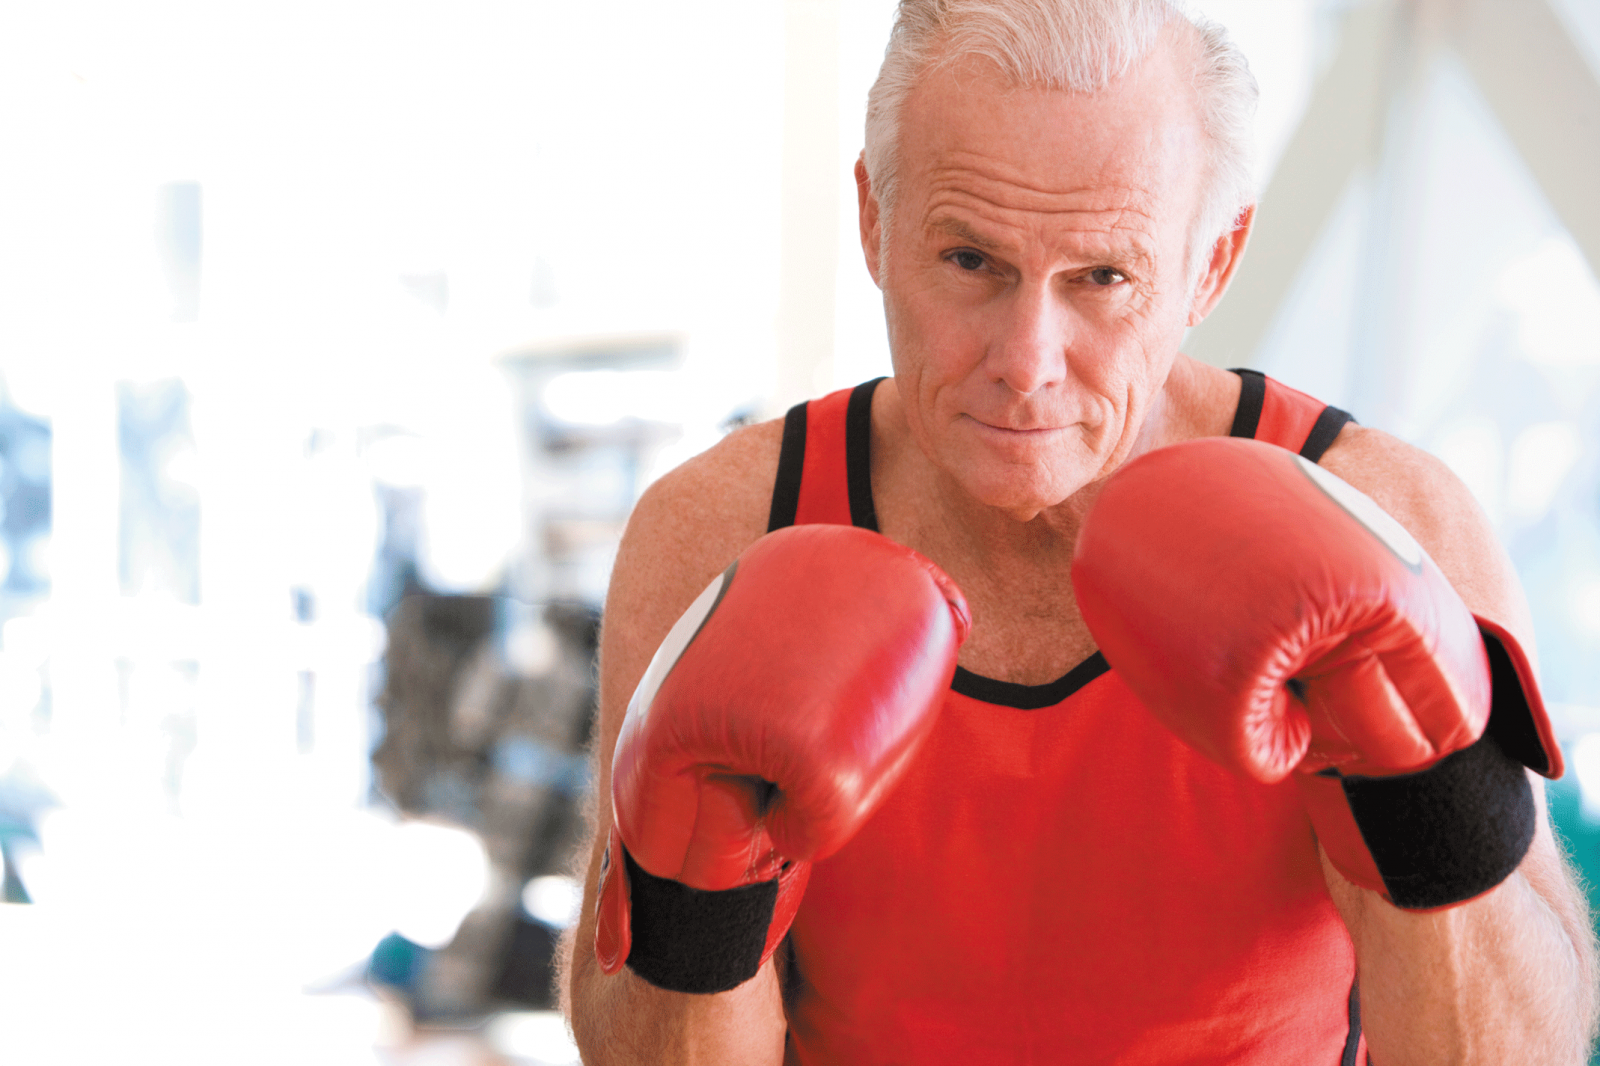 Punch up your exercise routine with fitness boxing - Harvard Health